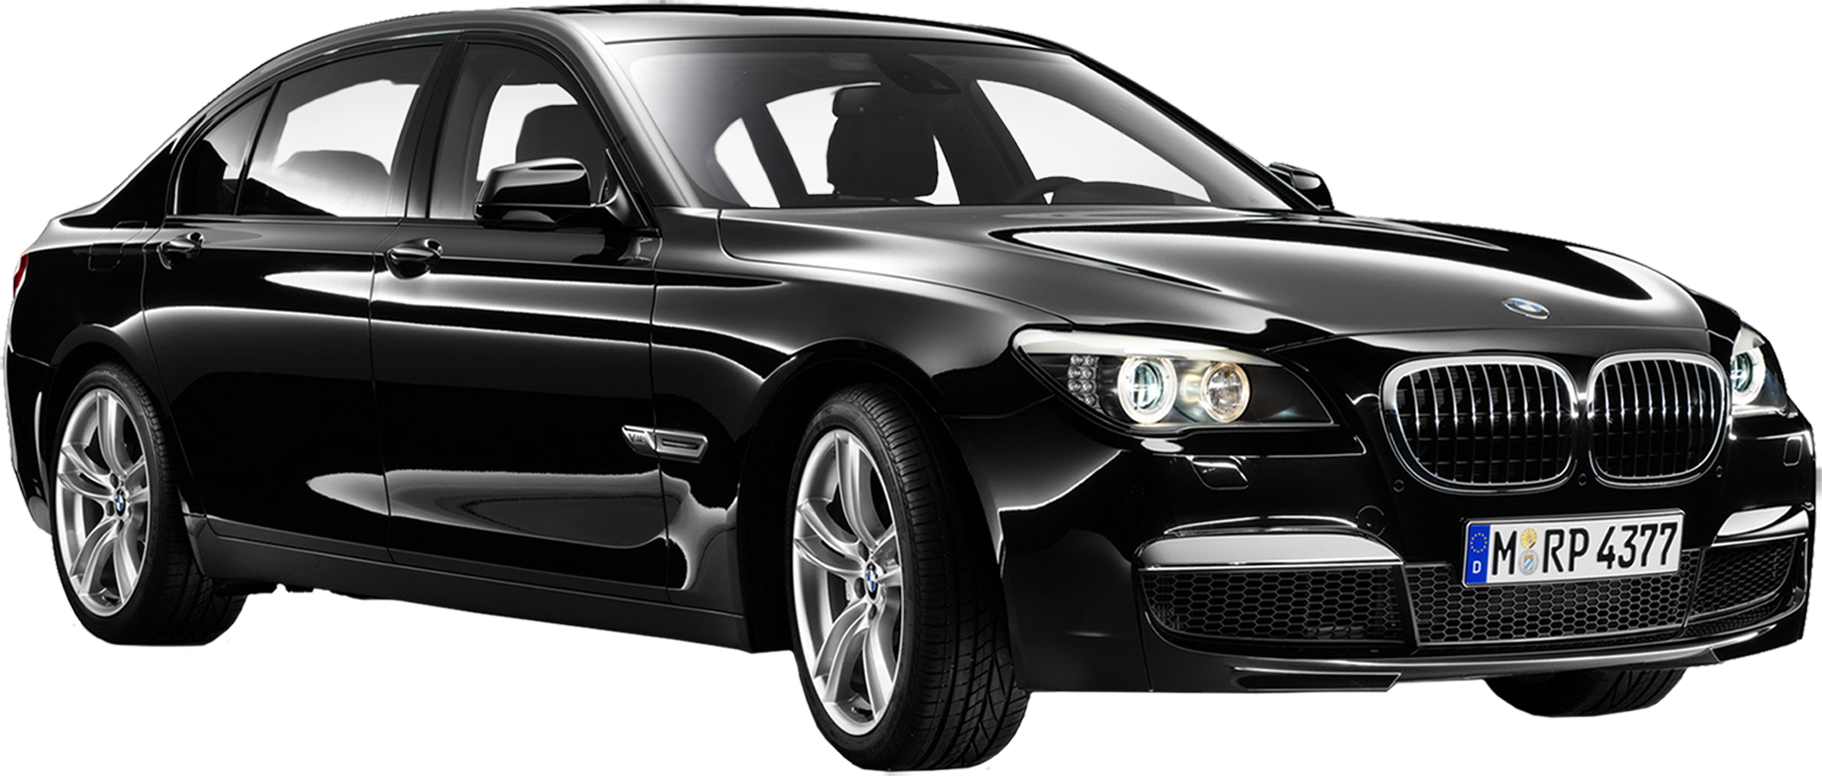 Black Bmw PNG Image - PurePNG | Free transparent CC0 PNG Image Library graphic transparent library